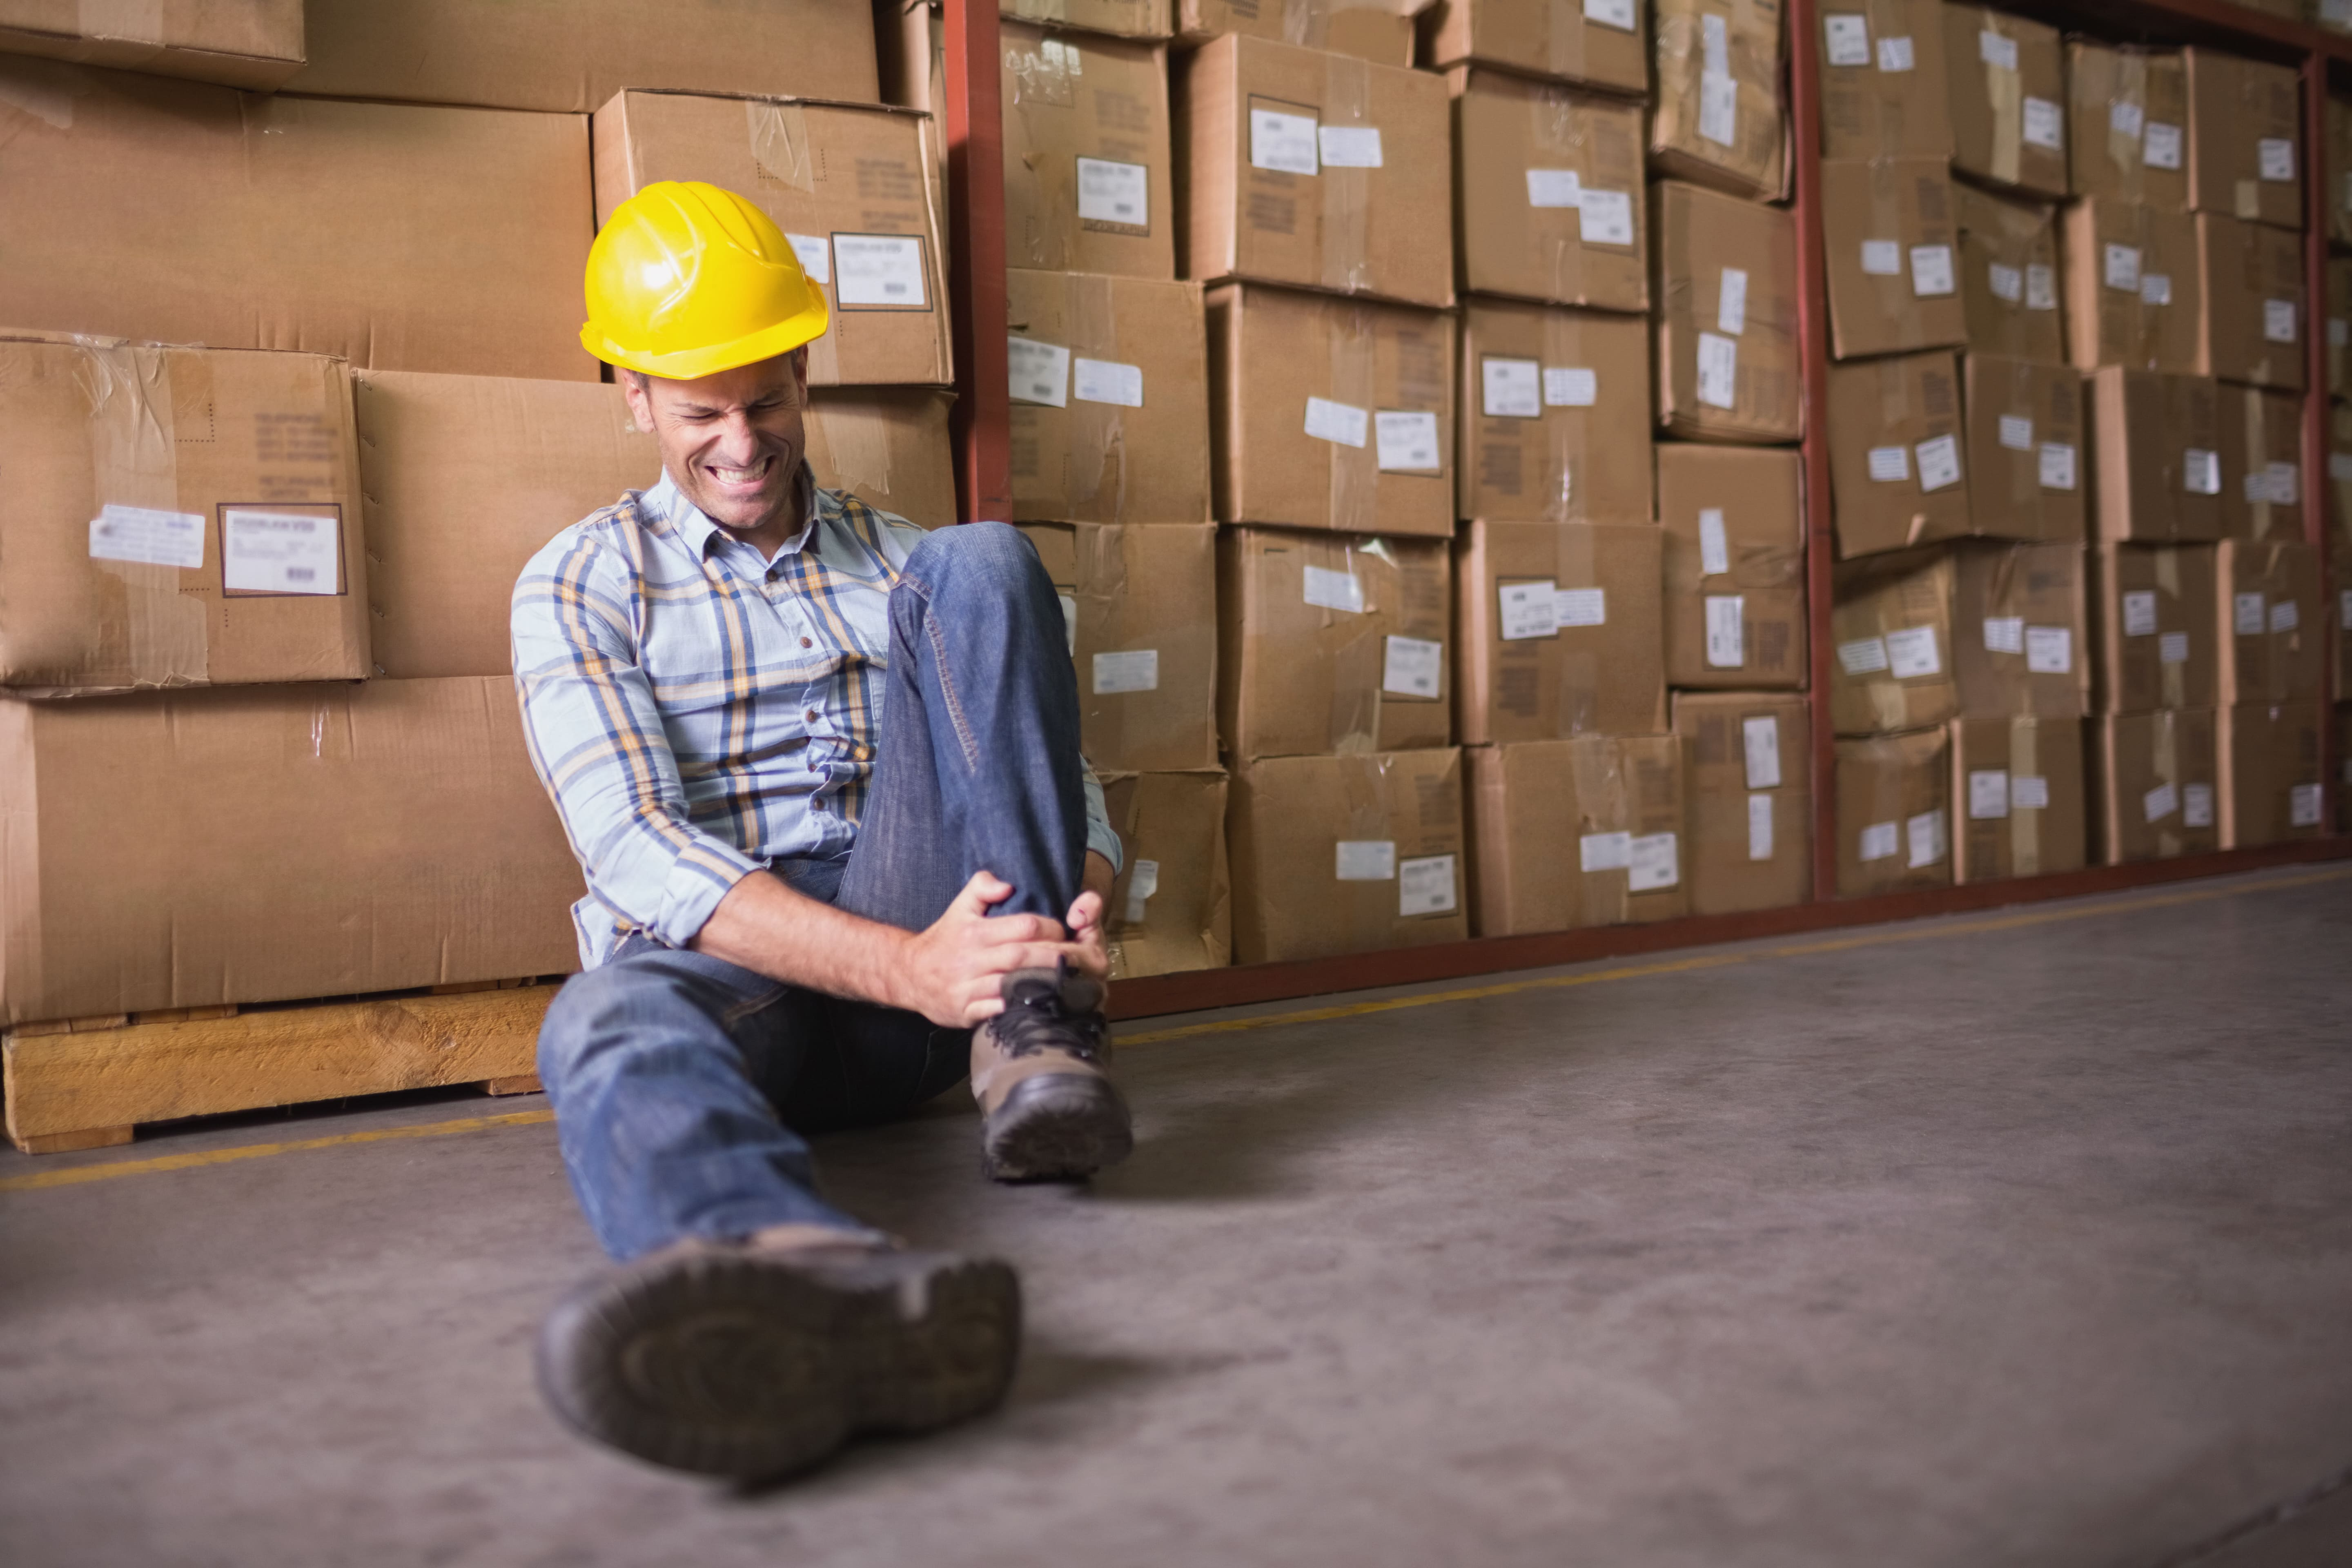 Workers' Compensation Injury Costs